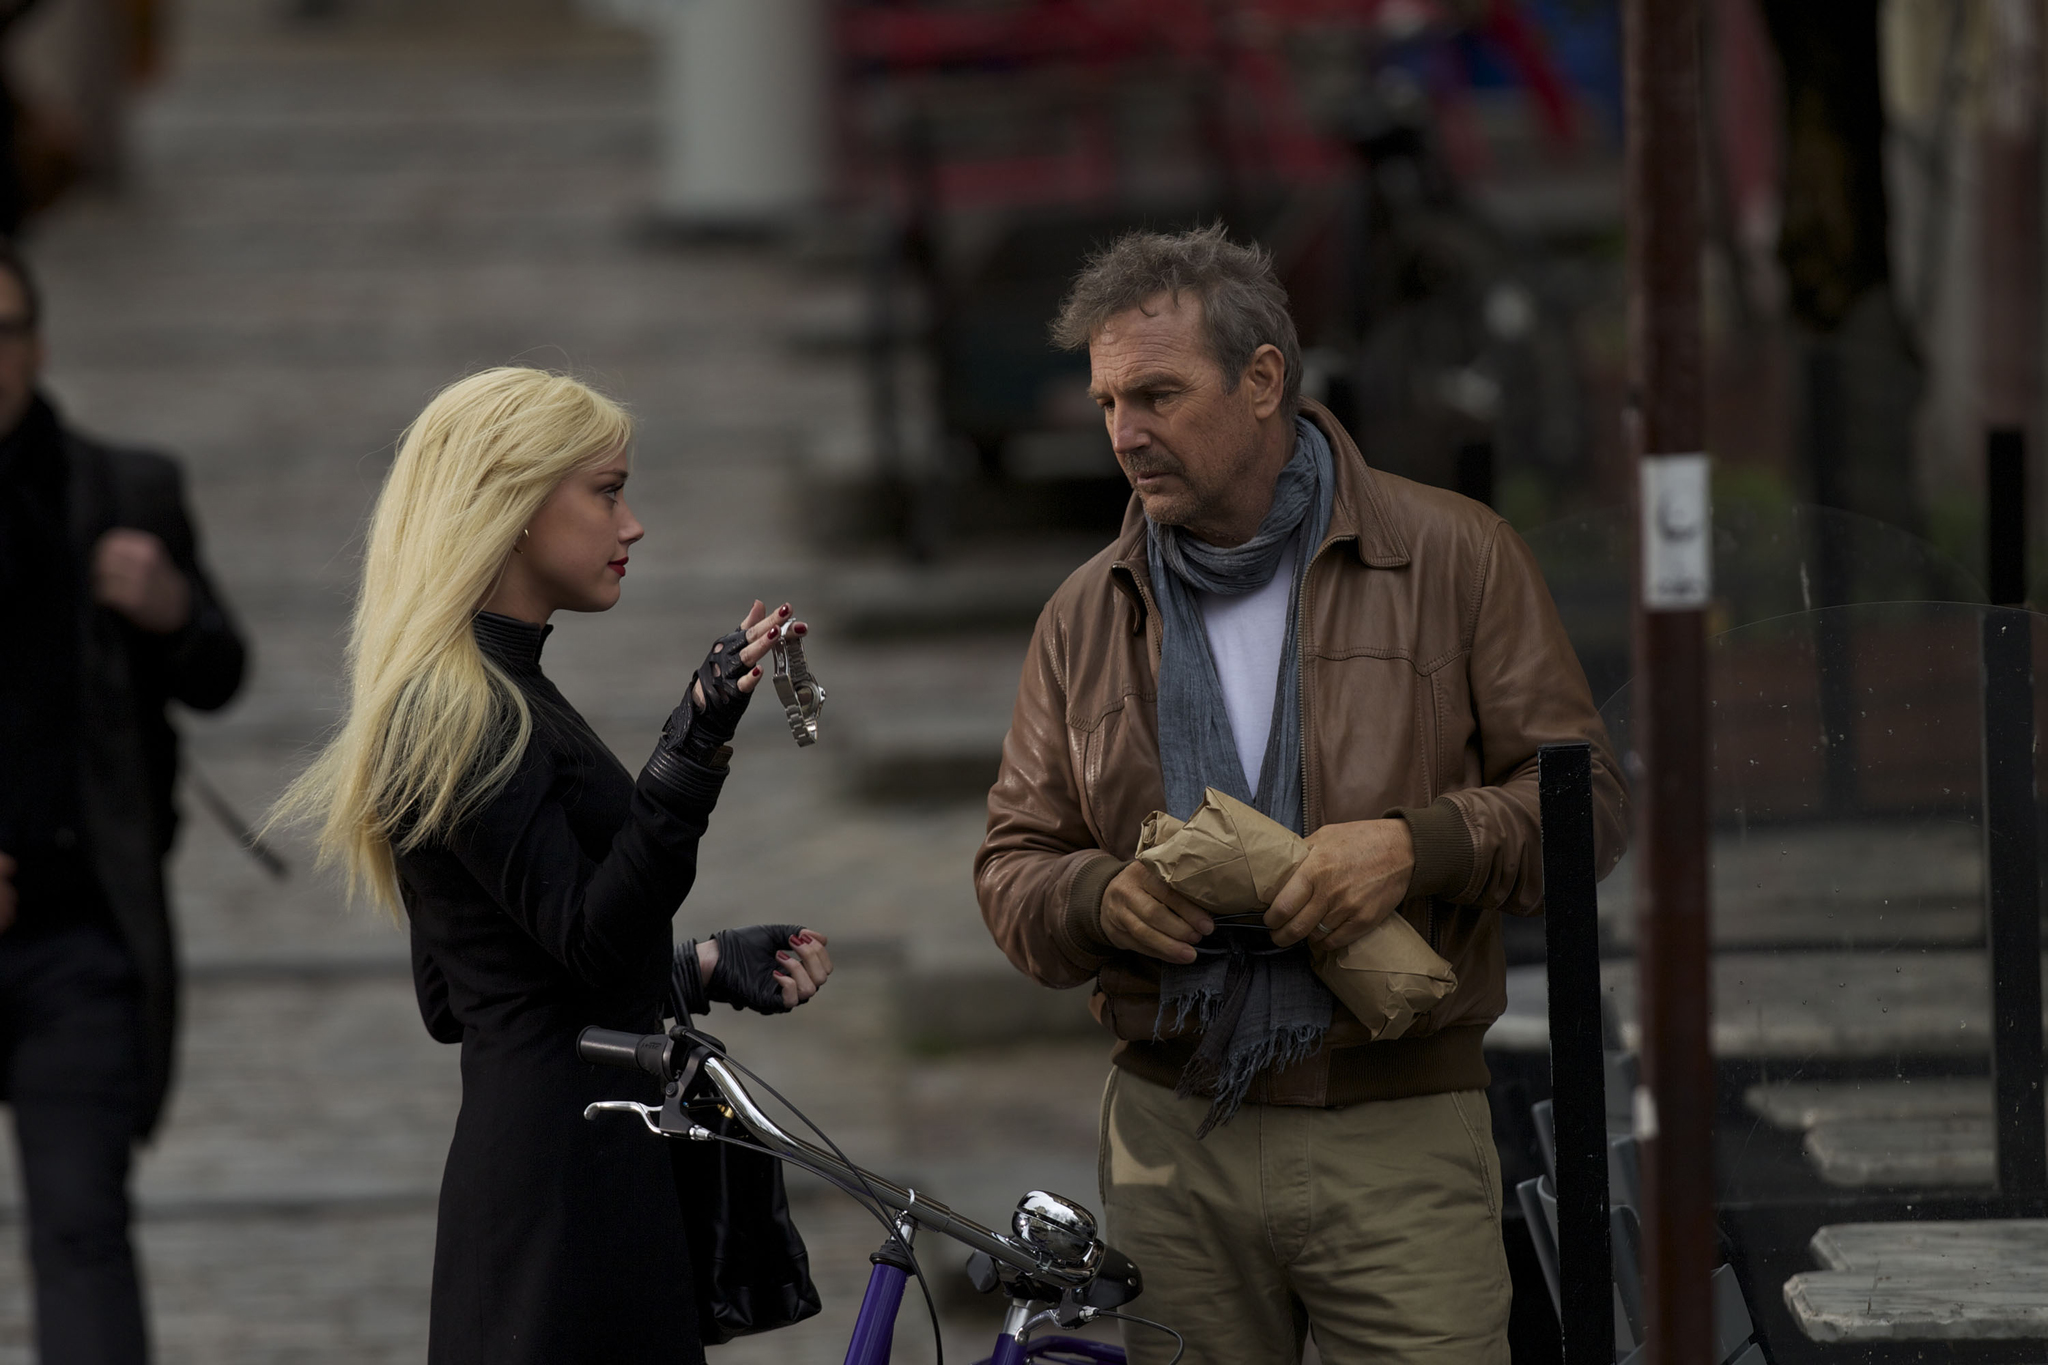 Kevin Costner and Amber Heard in 3 Days to Kill (2014)